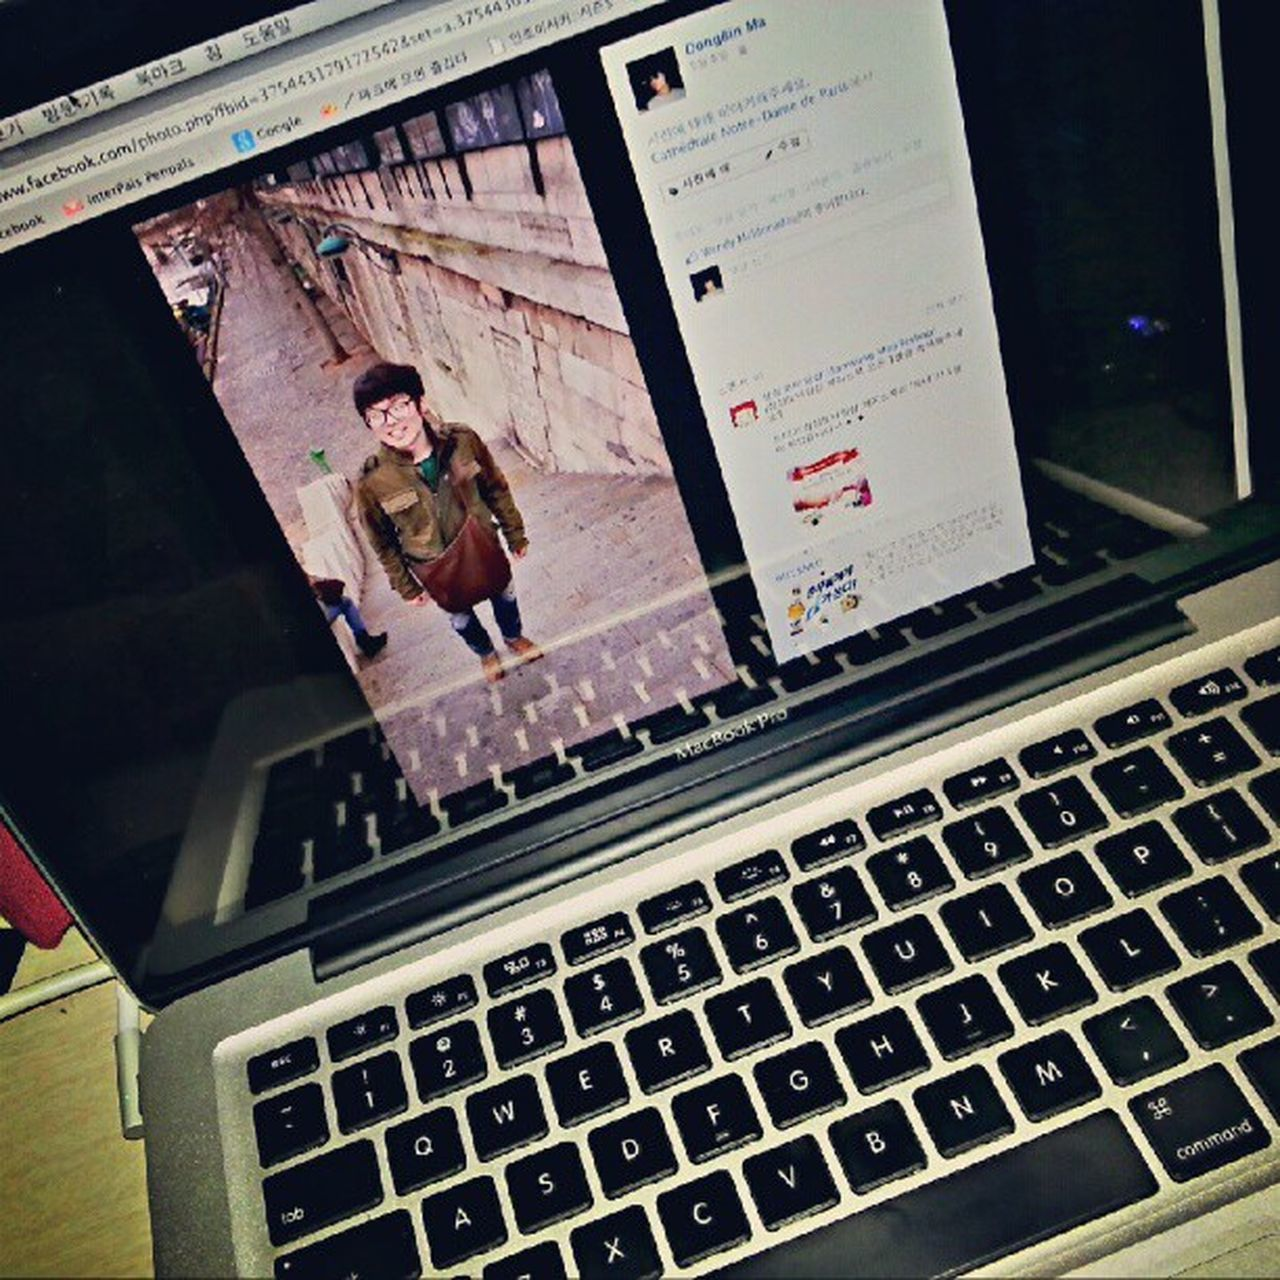 :D MacBook Pro 13inch Facebook me paris brown bag orive jacket abercrombie jeans dsquared2 glasses fashion korean